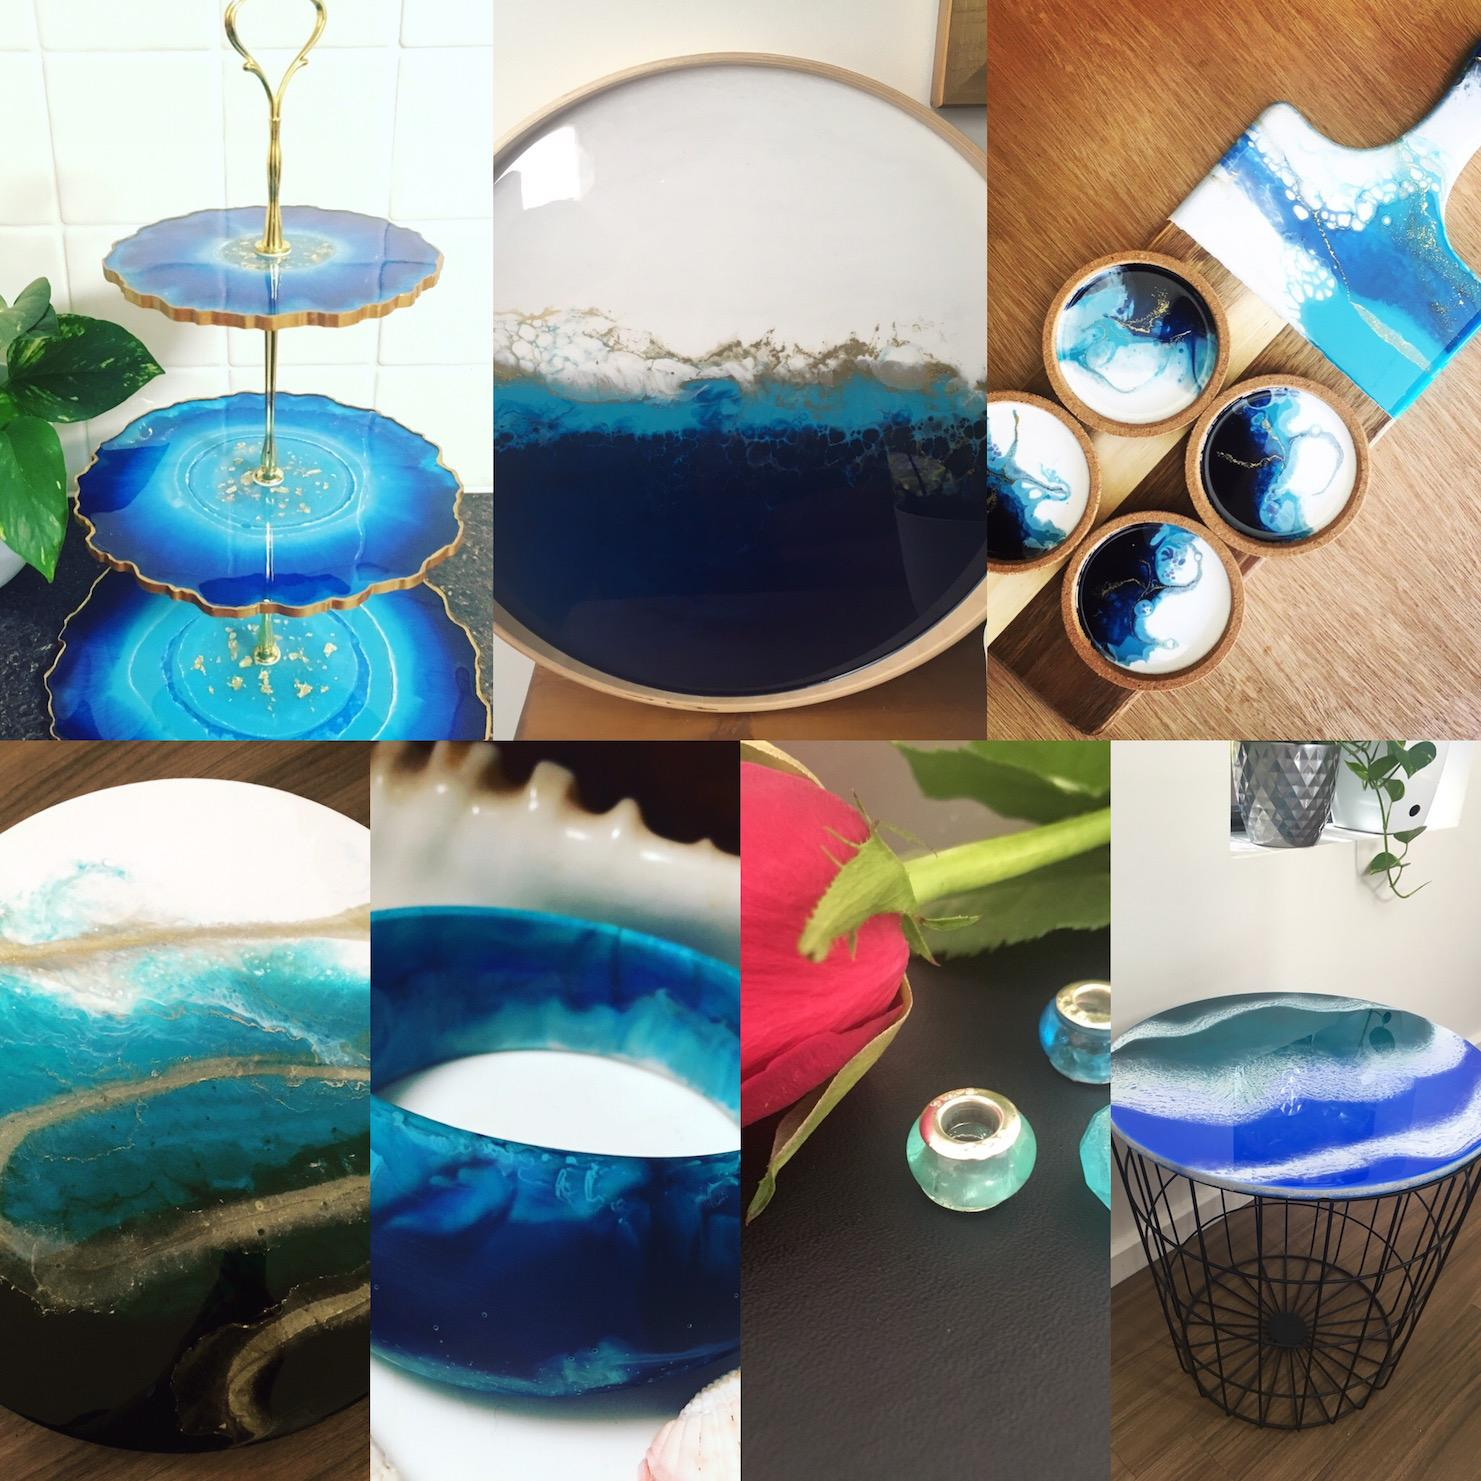 Resinating Blue homewares & jewellery